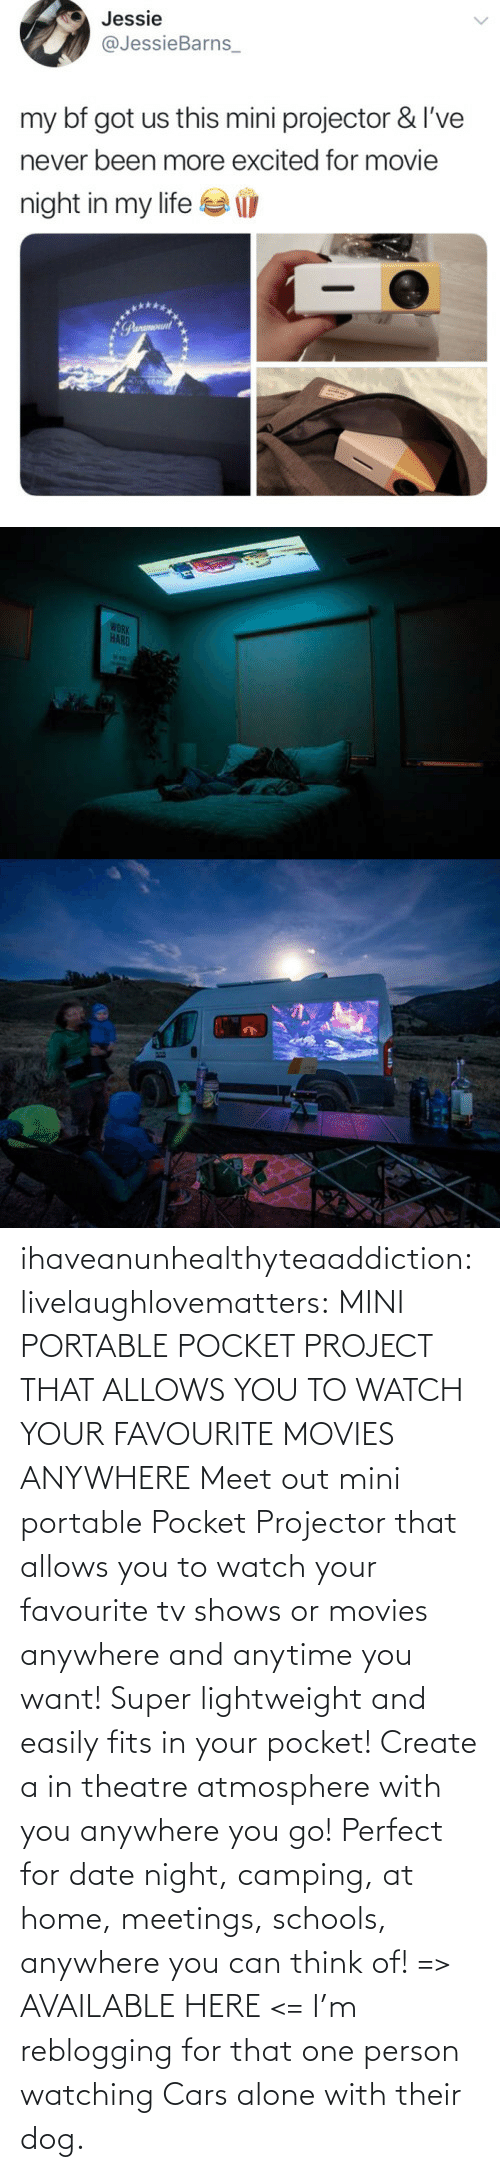 TV shows: ihaveanunhealthyteaaddiction:  livelaughlovematters: MINI PORTABLE POCKET PROJECT THAT ALLOWS YOU TO WATCH YOUR FAVOURITE MOVIES ANYWHERE Meet out mini portable Pocket Projector that allows you to watch your favourite tv shows or movies anywhere and anytime you want! Super lightweight and easily fits in your pocket! Create a in theatre atmosphere with you anywhere you go! Perfect for date night, camping, at home, meetings, schools, anywhere you can think of! => AVAILABLE HERE <=    I'm reblogging for that one person watching Cars alone with their dog.